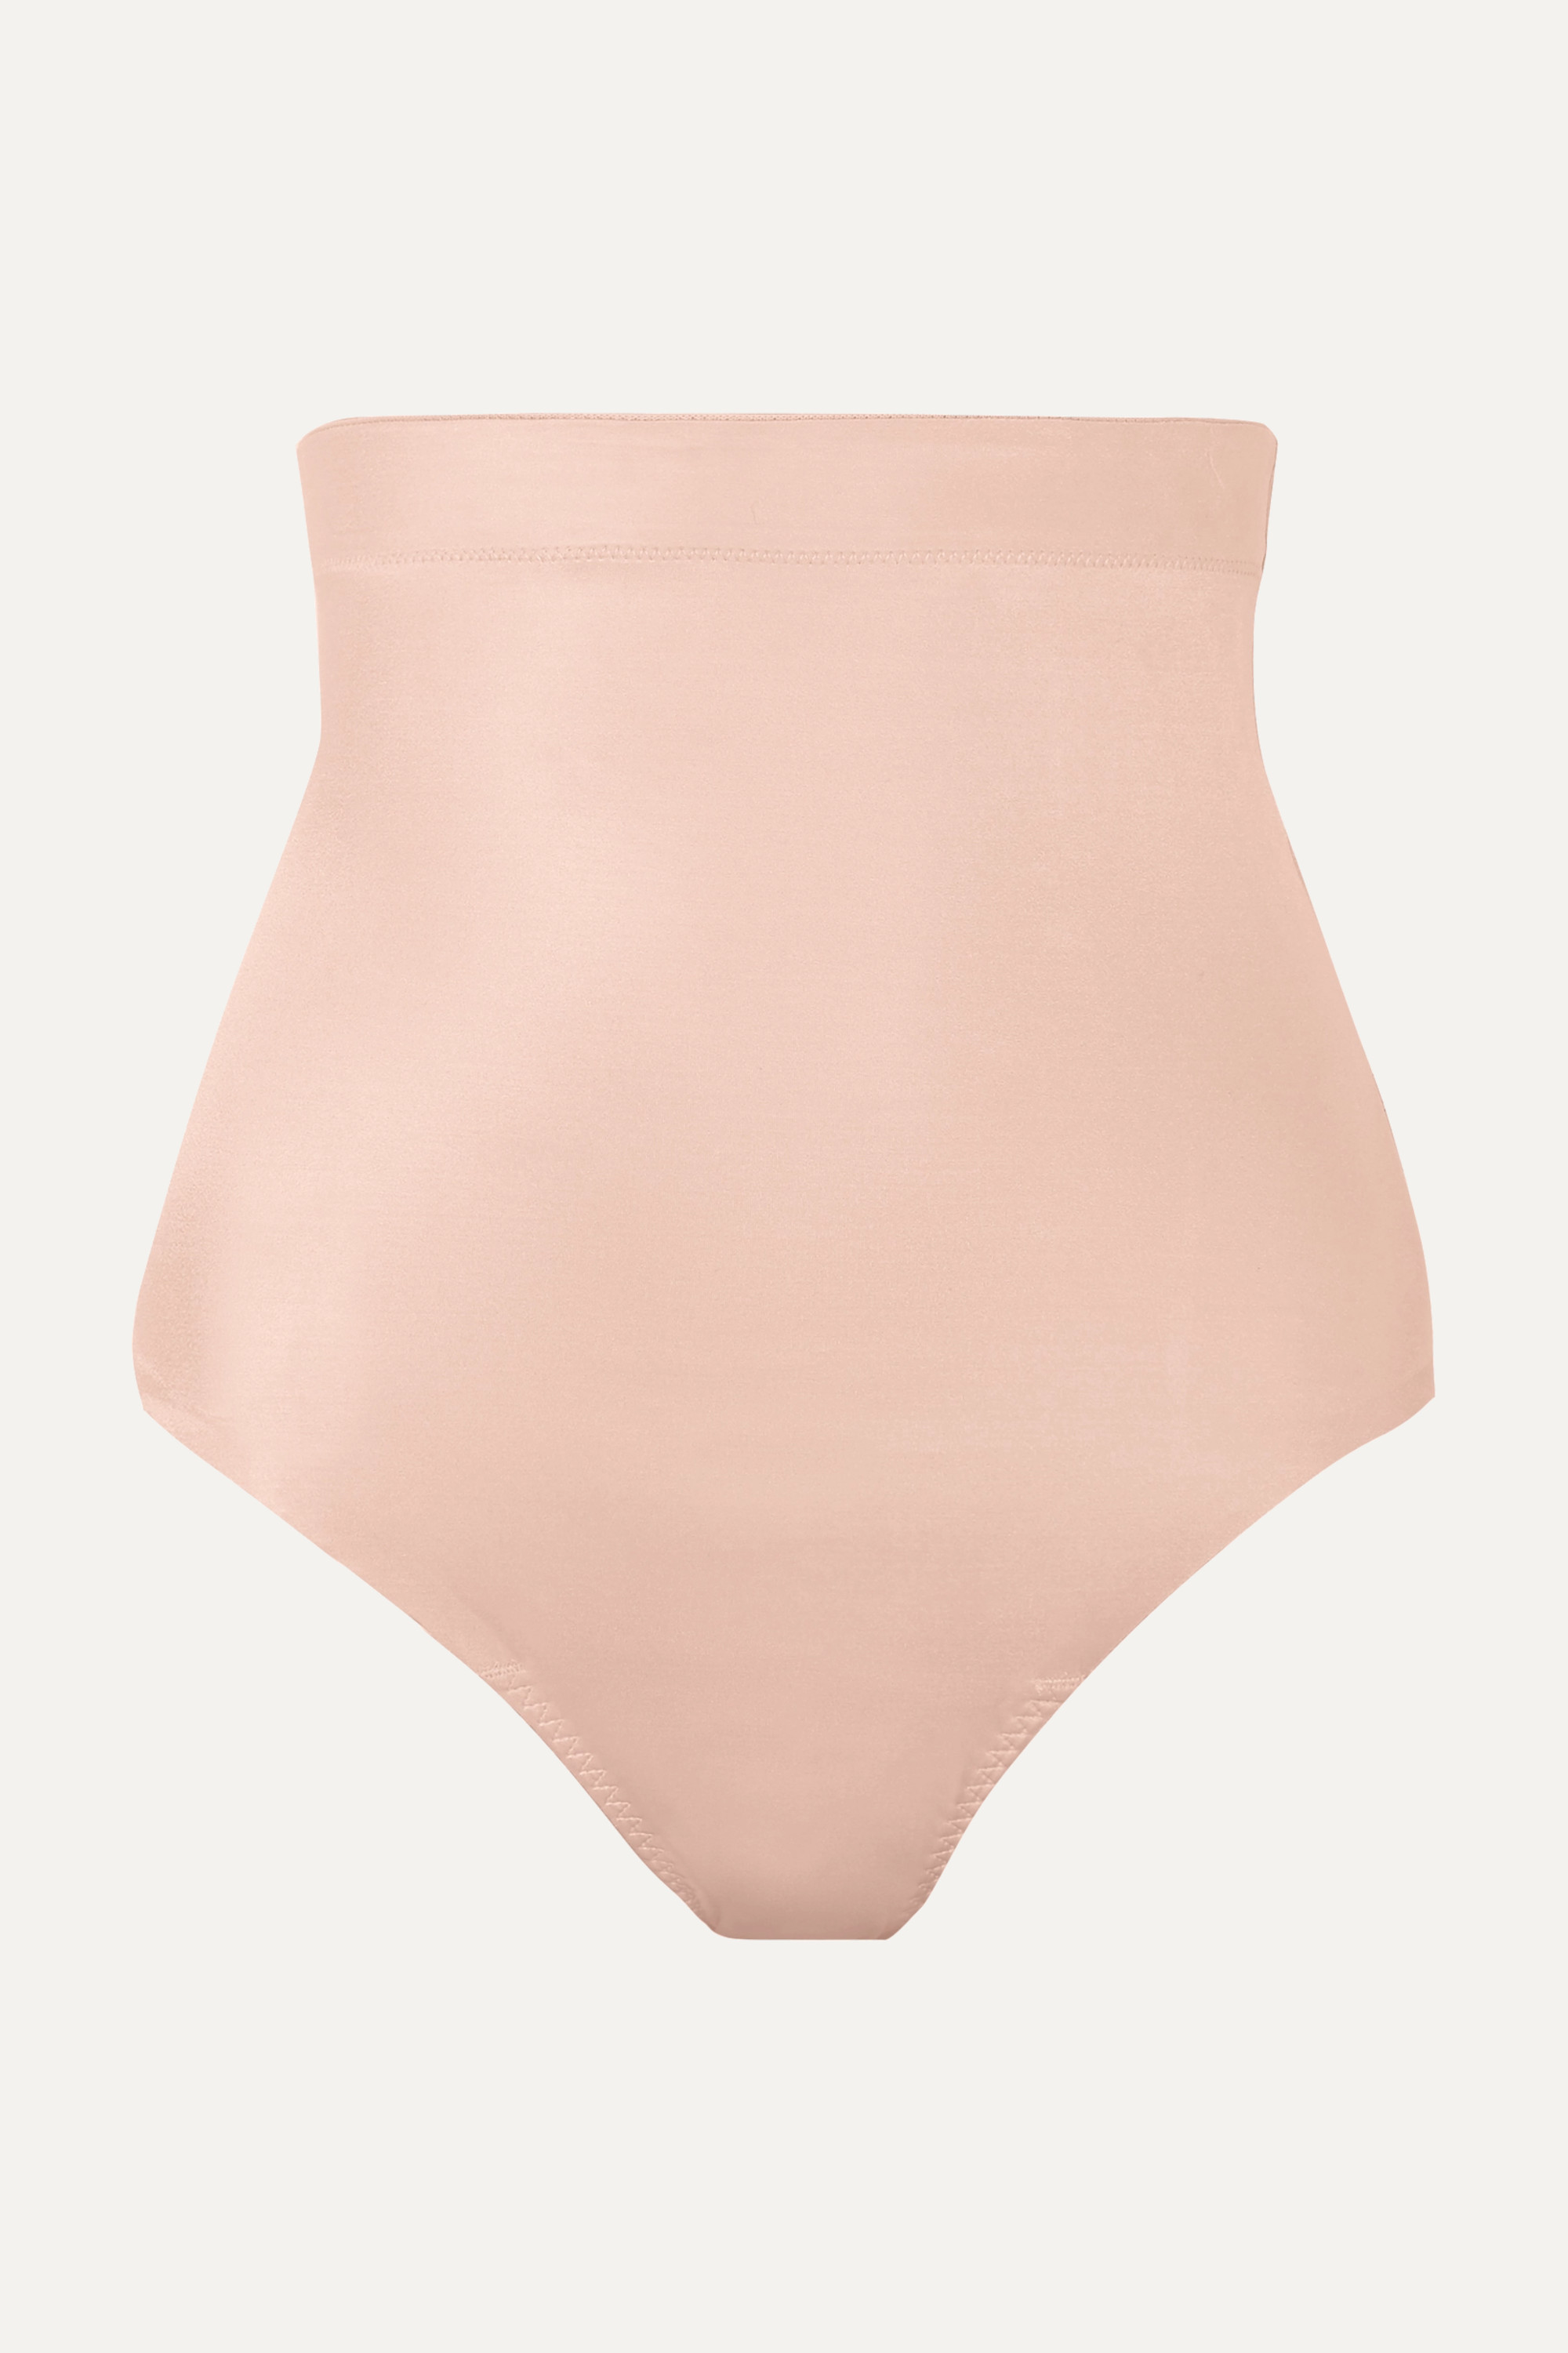 Spanx Suit Your Fancy high-rise stretch thong